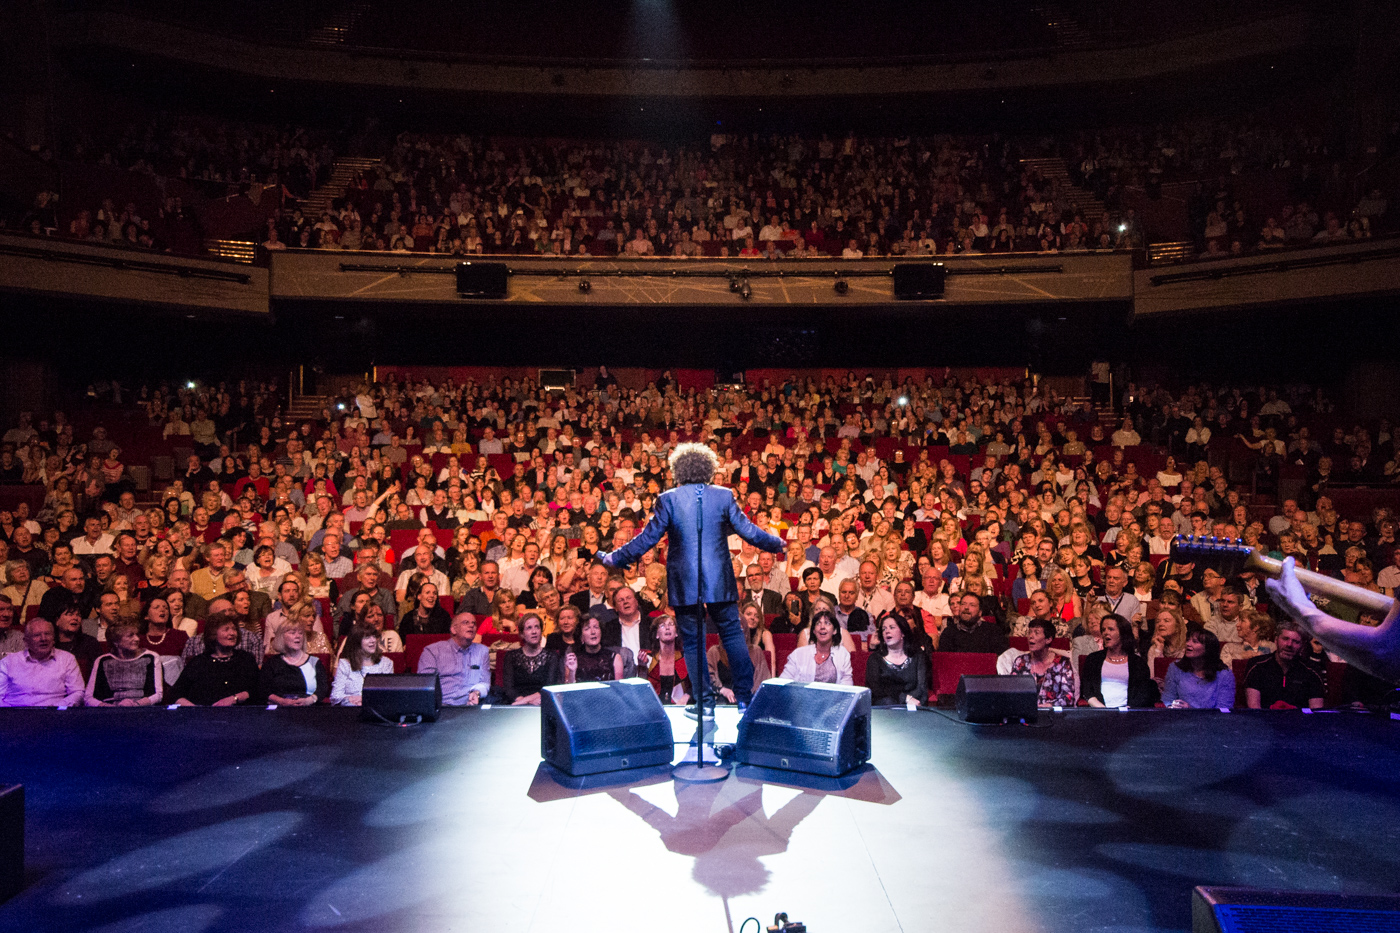 Leo Sayer at Bord Gais Energy Theatre by Sean Smyth (16-10-15) (115 of 129)